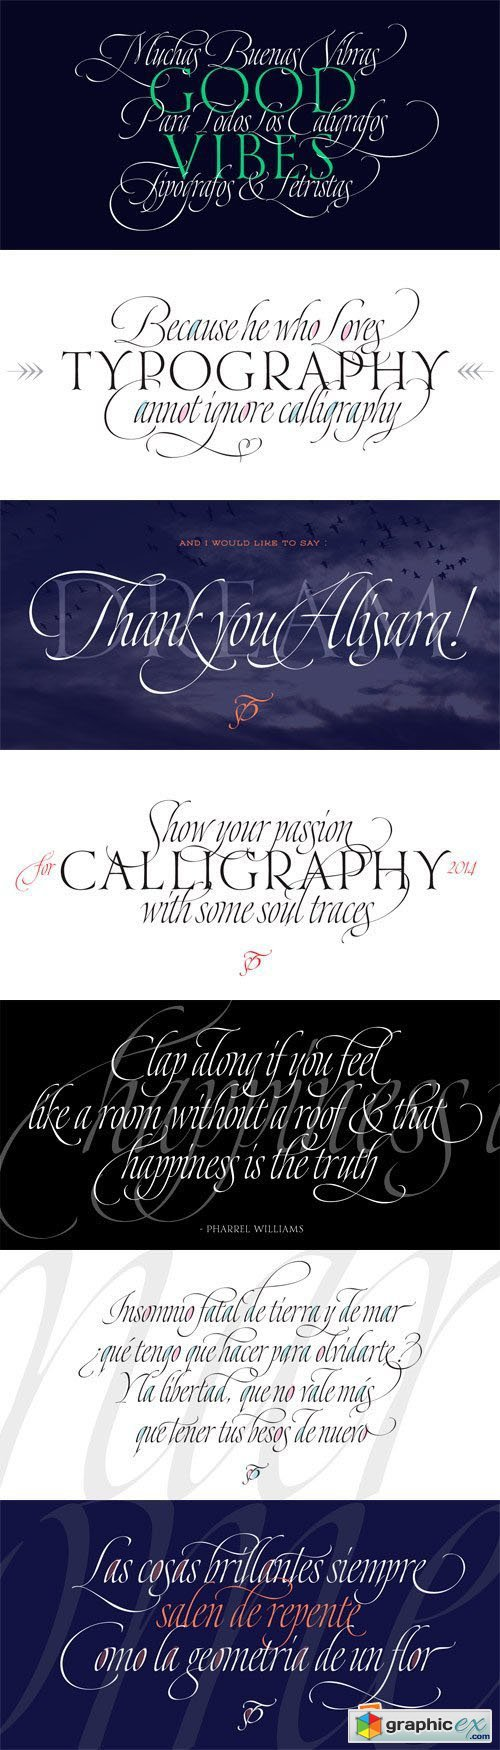 Dream Script Pro Font Family - 2 Fonts for $74